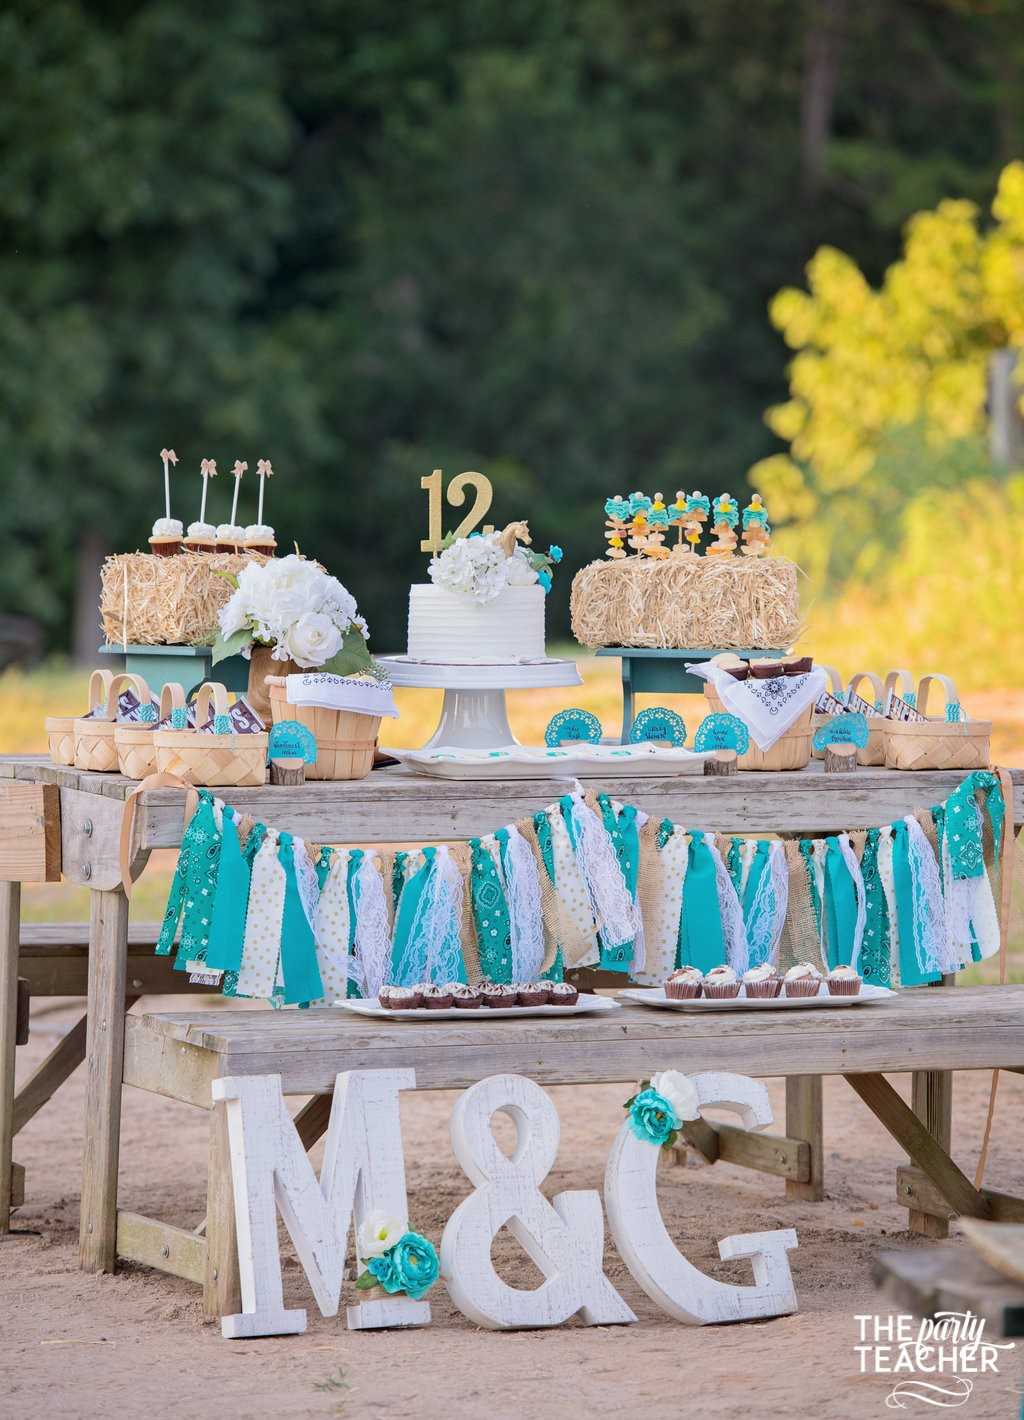 Horseback Riding Party by The Party Teacher - dessert table